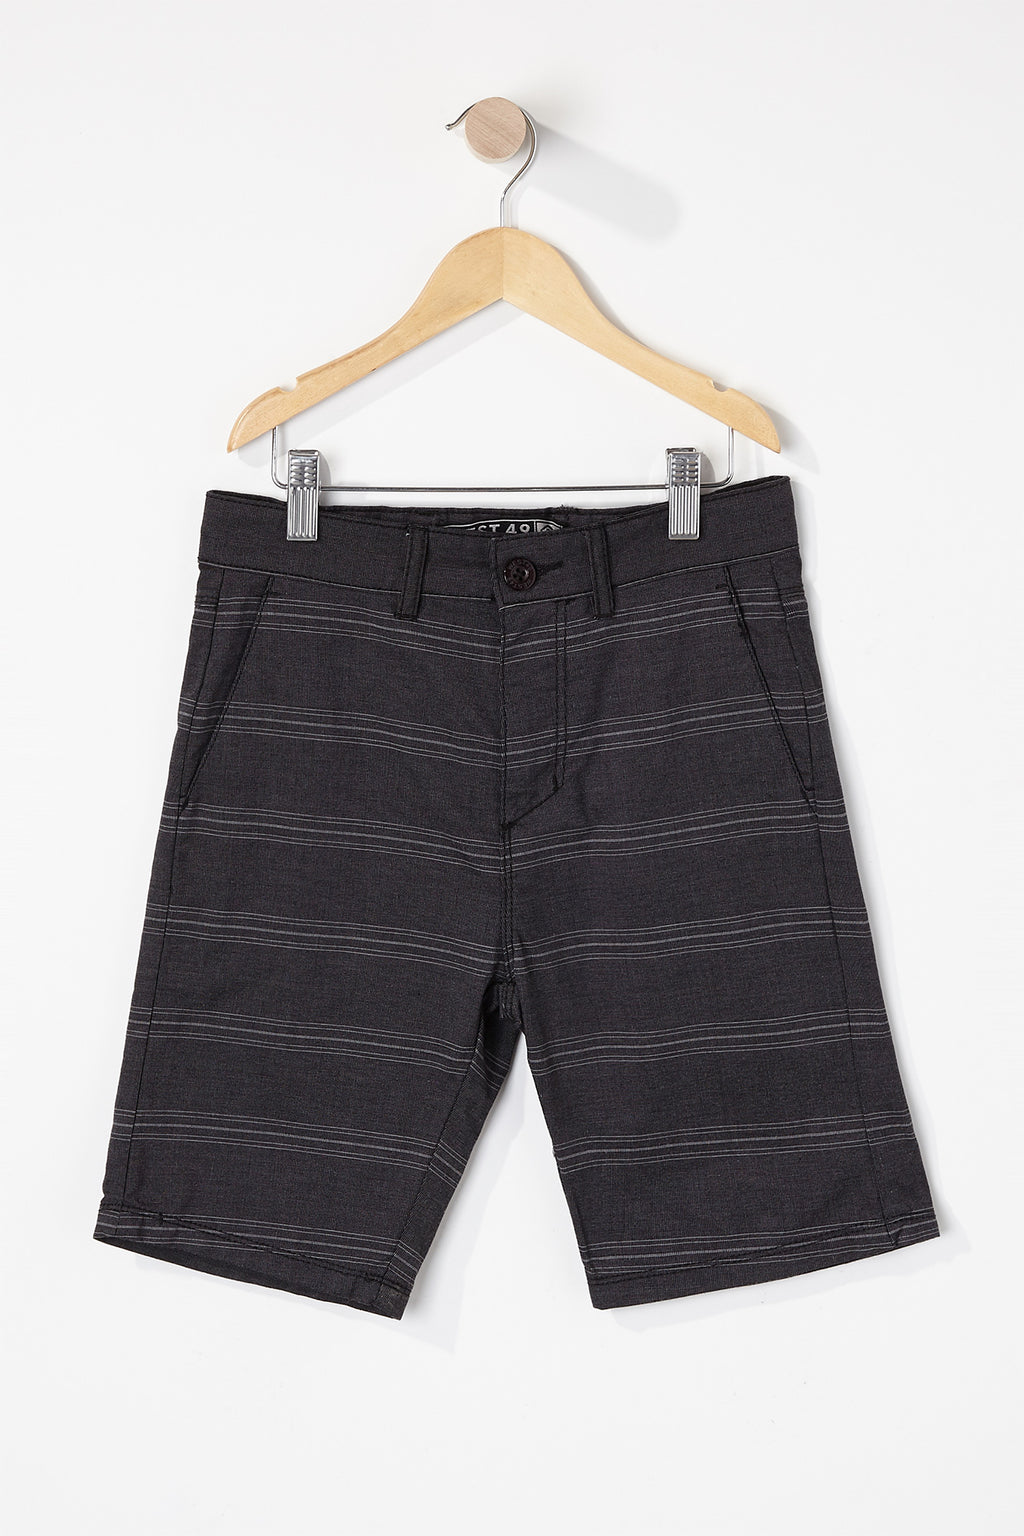 West49 Boys Striped Shorts